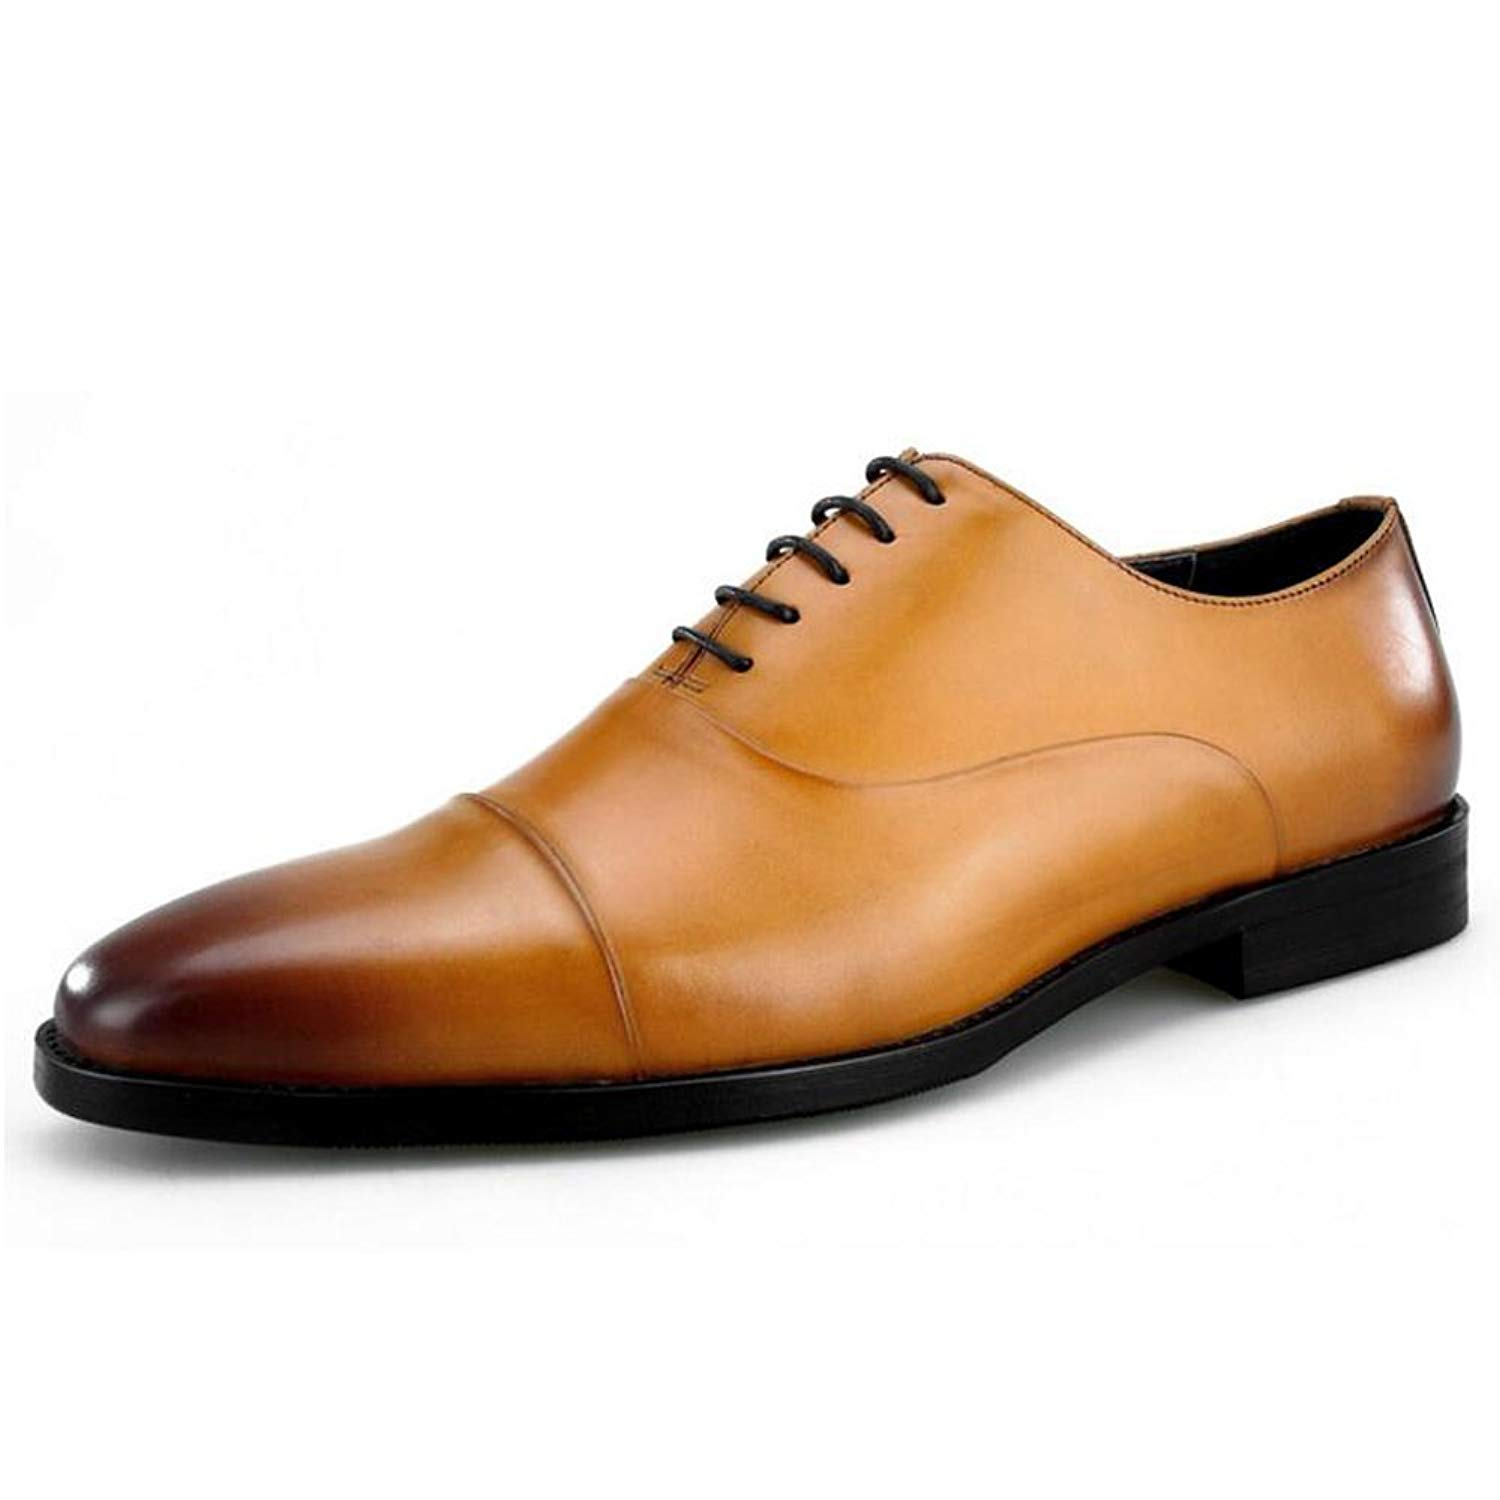 JUNBOSI Three-Joint Men's Shoes - High-end Men's Leather Shoes - Lace up Formal Business Shoes. Four Seasons Size 6-12 (Color : Brown, Size : 42)